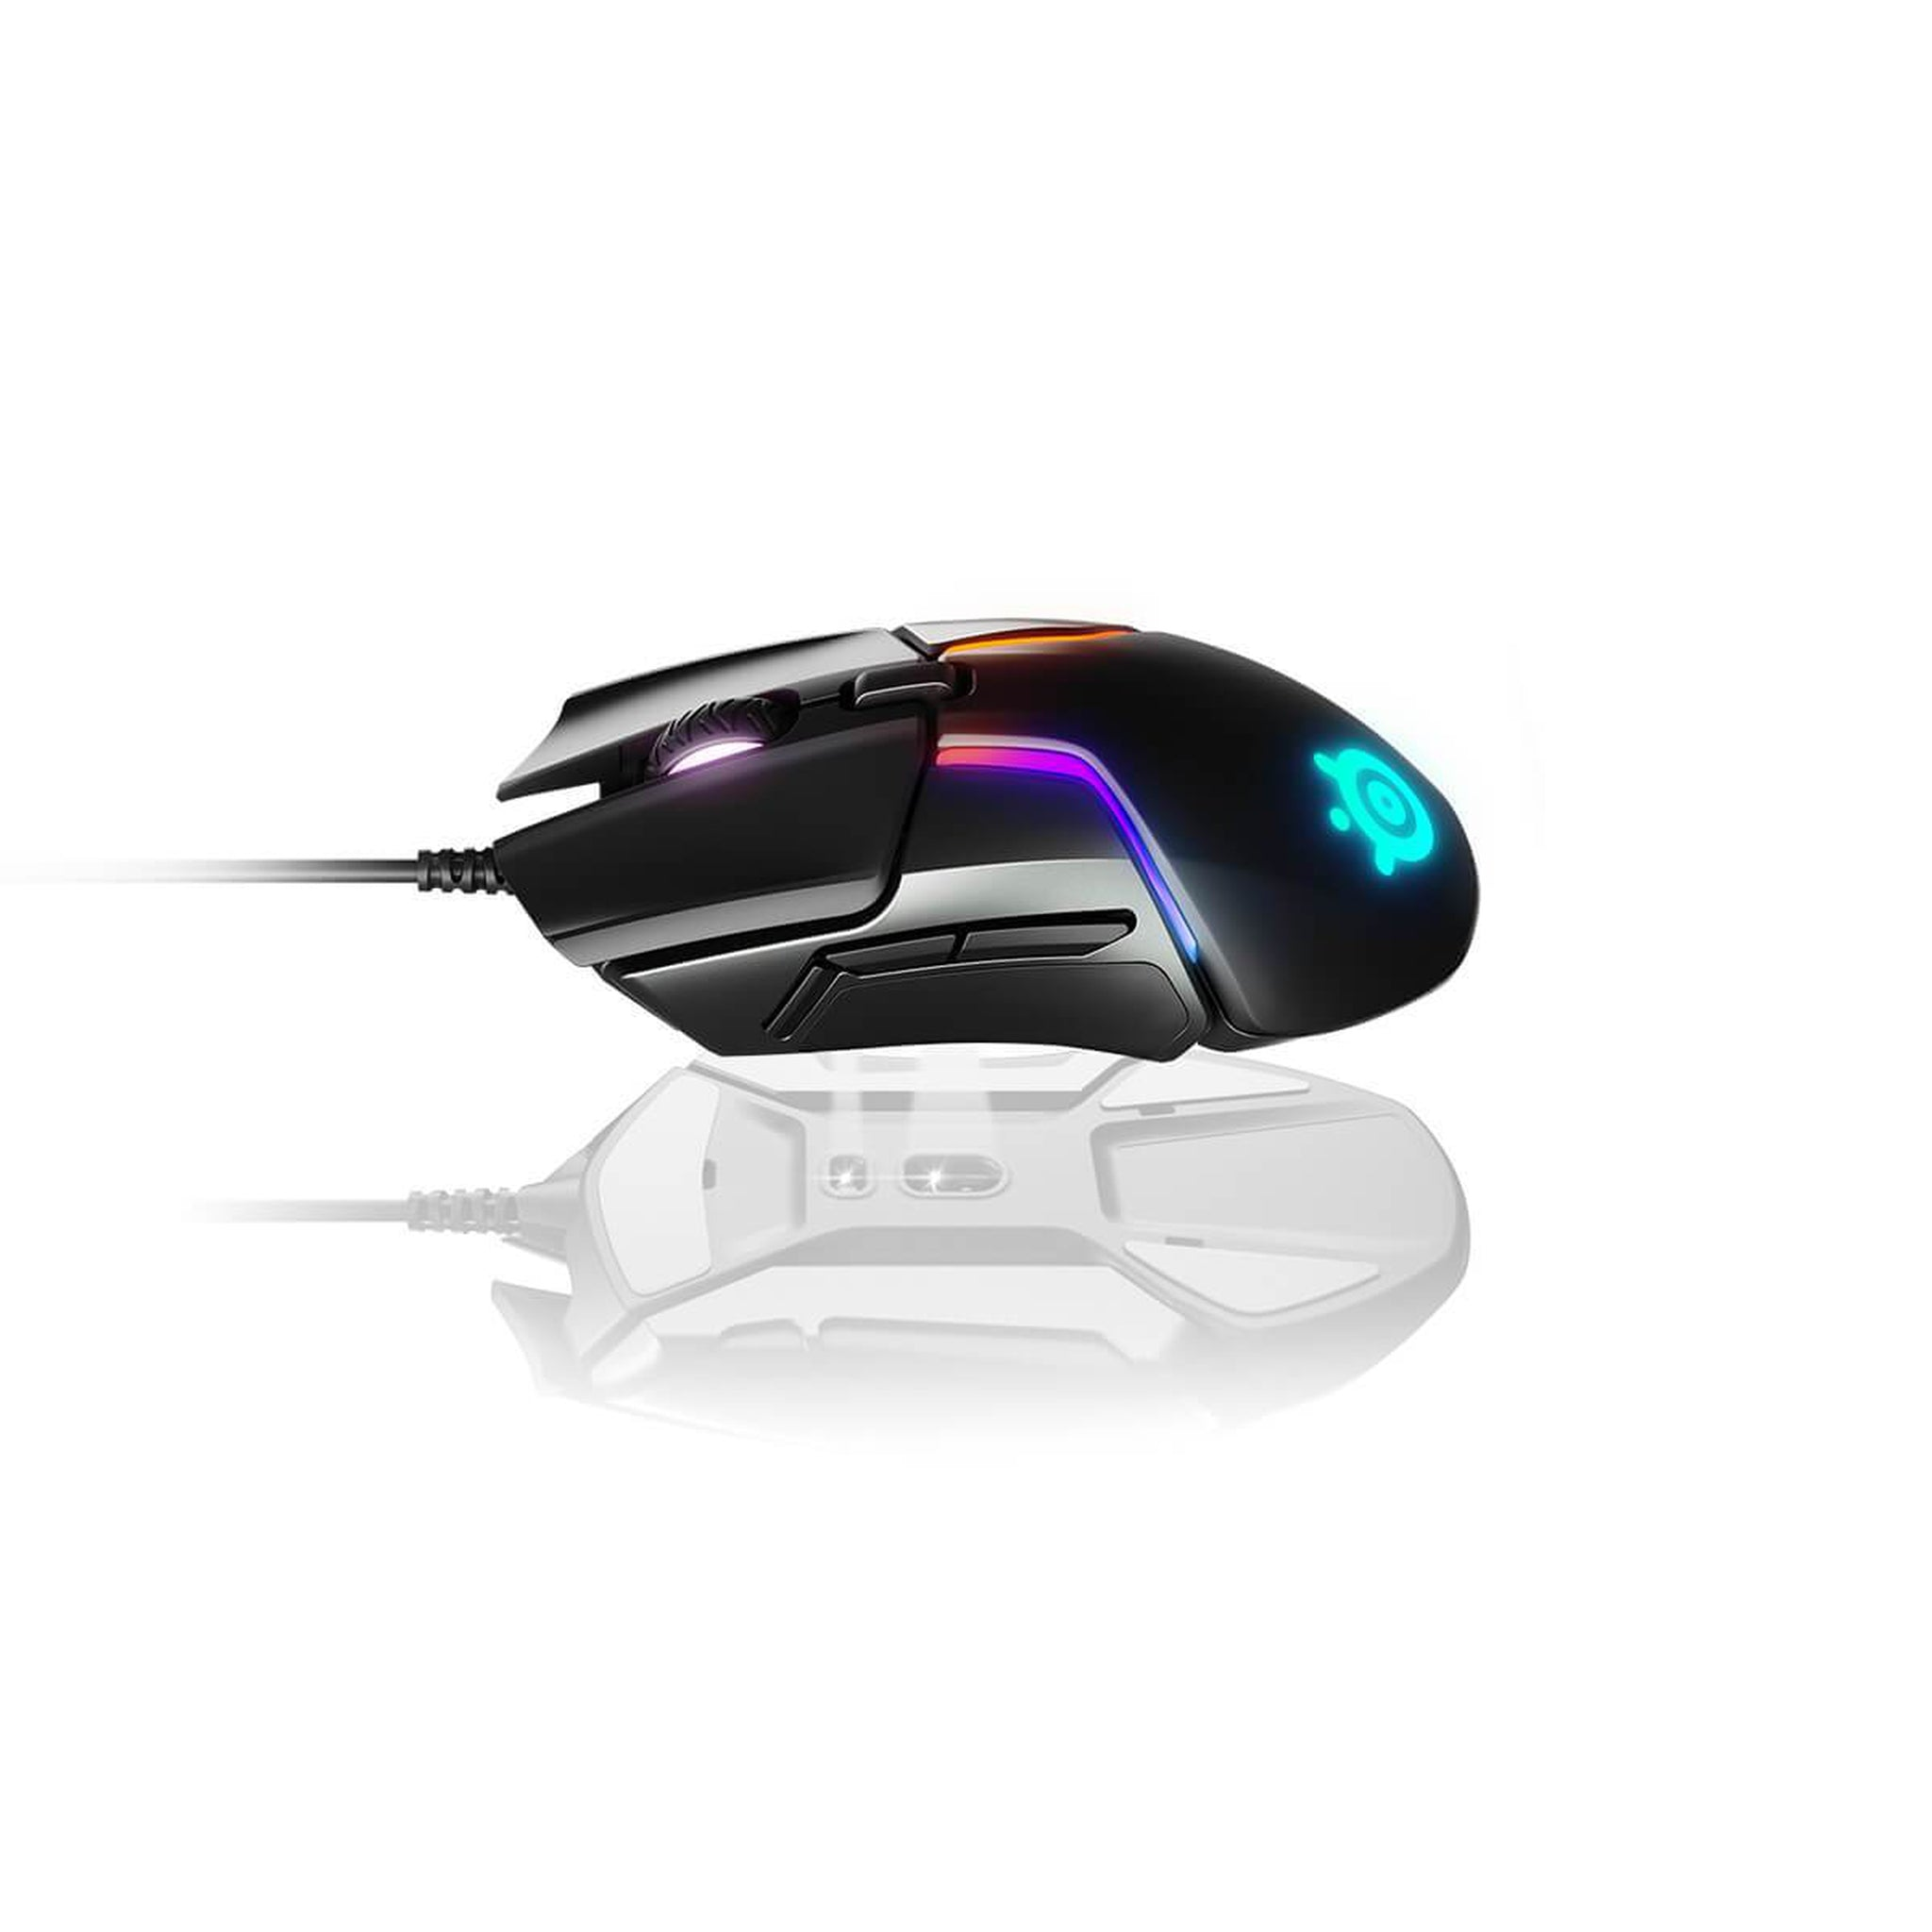 SteelSeries Rival 600 Mouse - Choice Computer Technologies